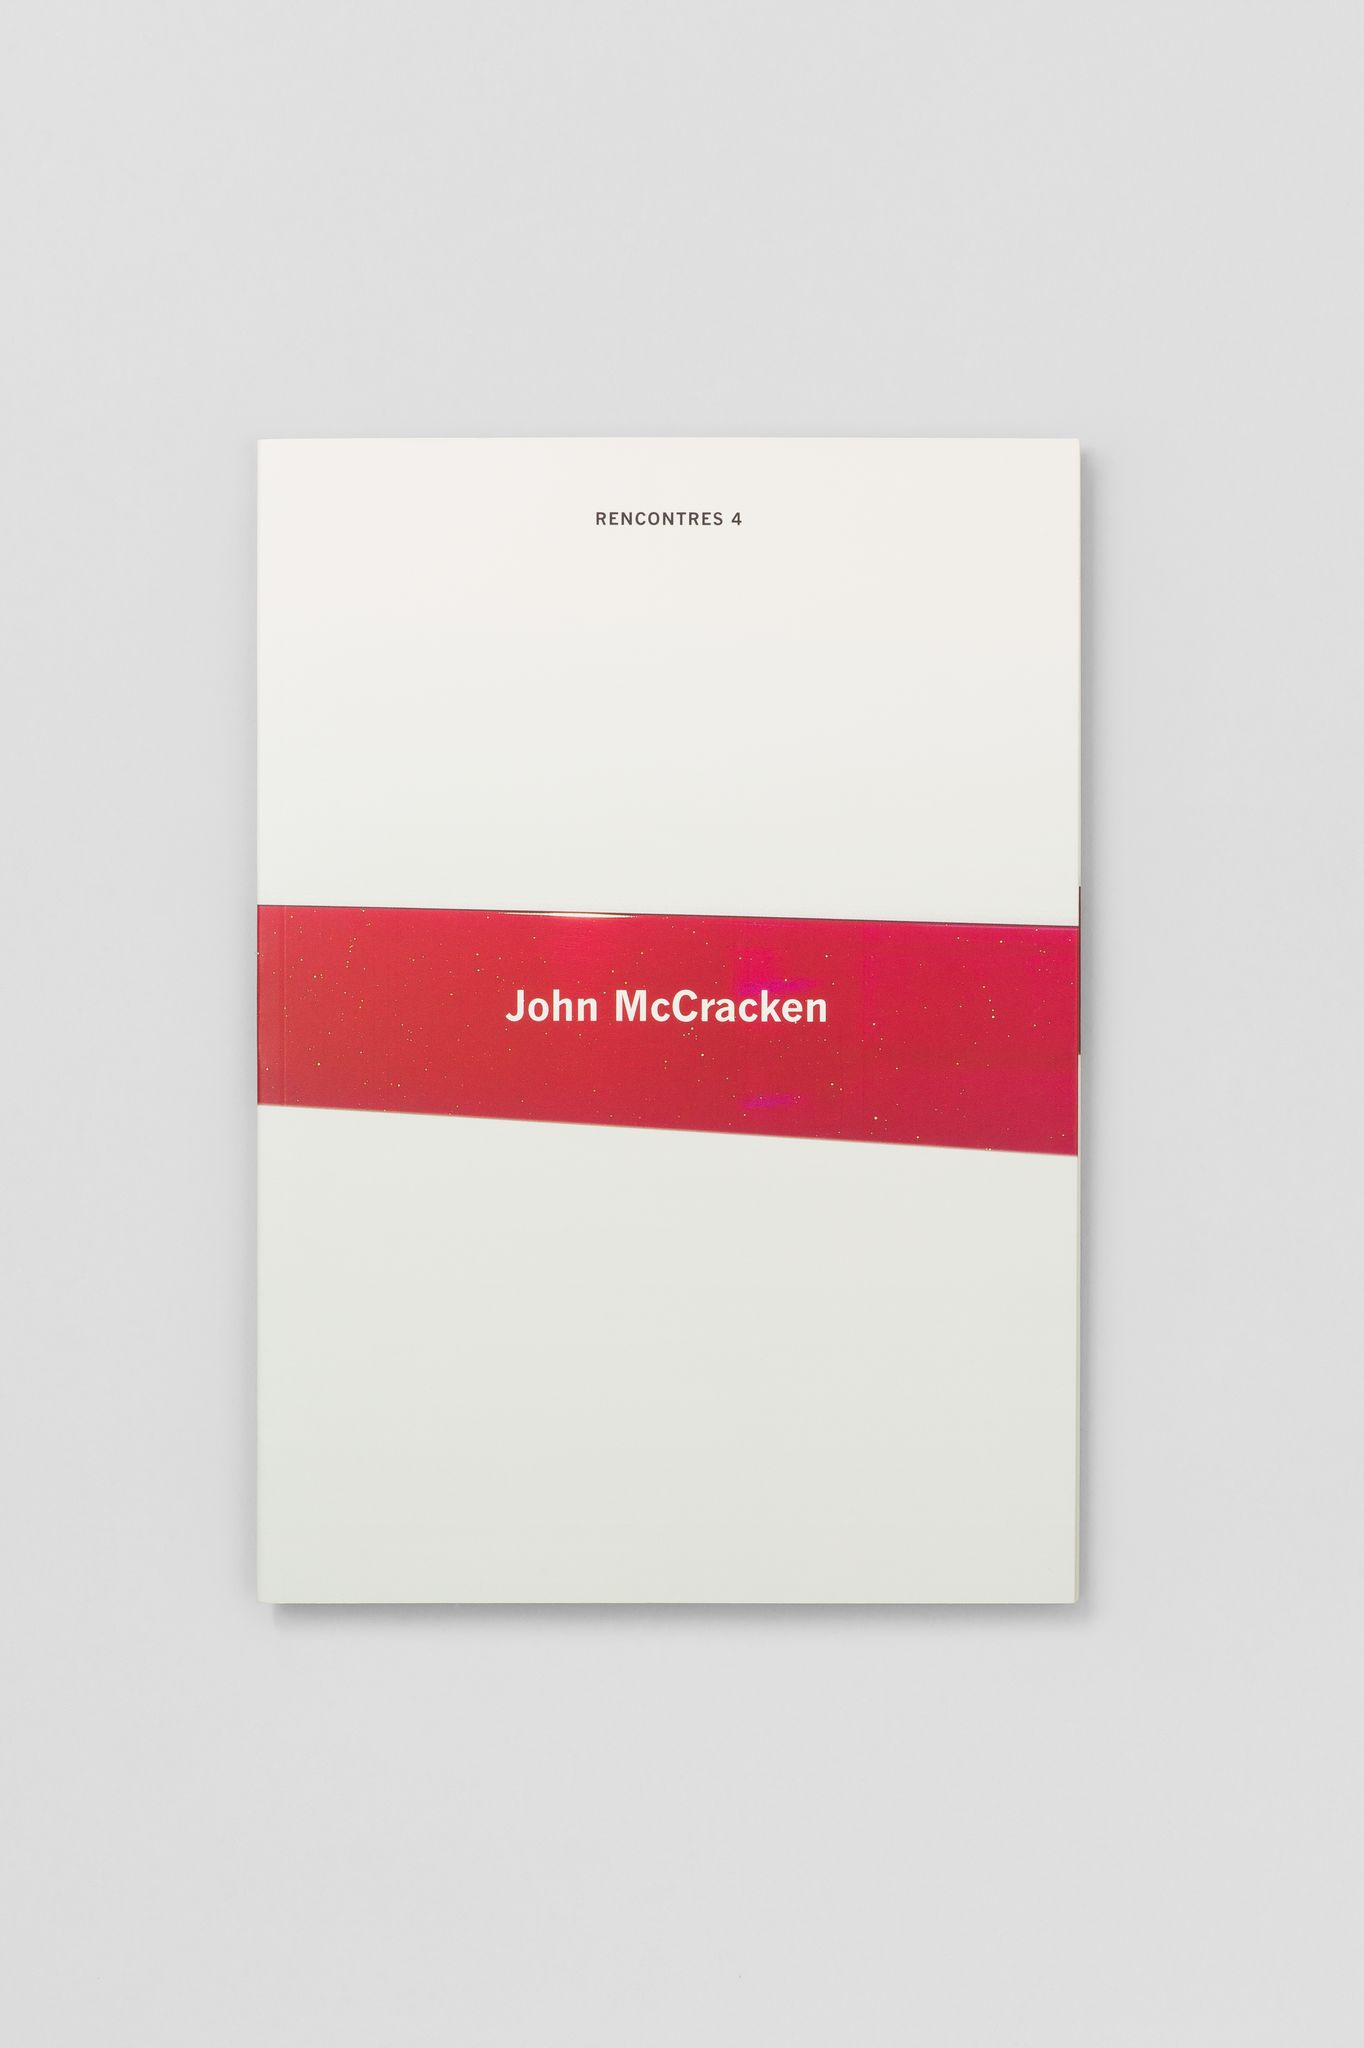 Image of John McCracken - Rencontres 4